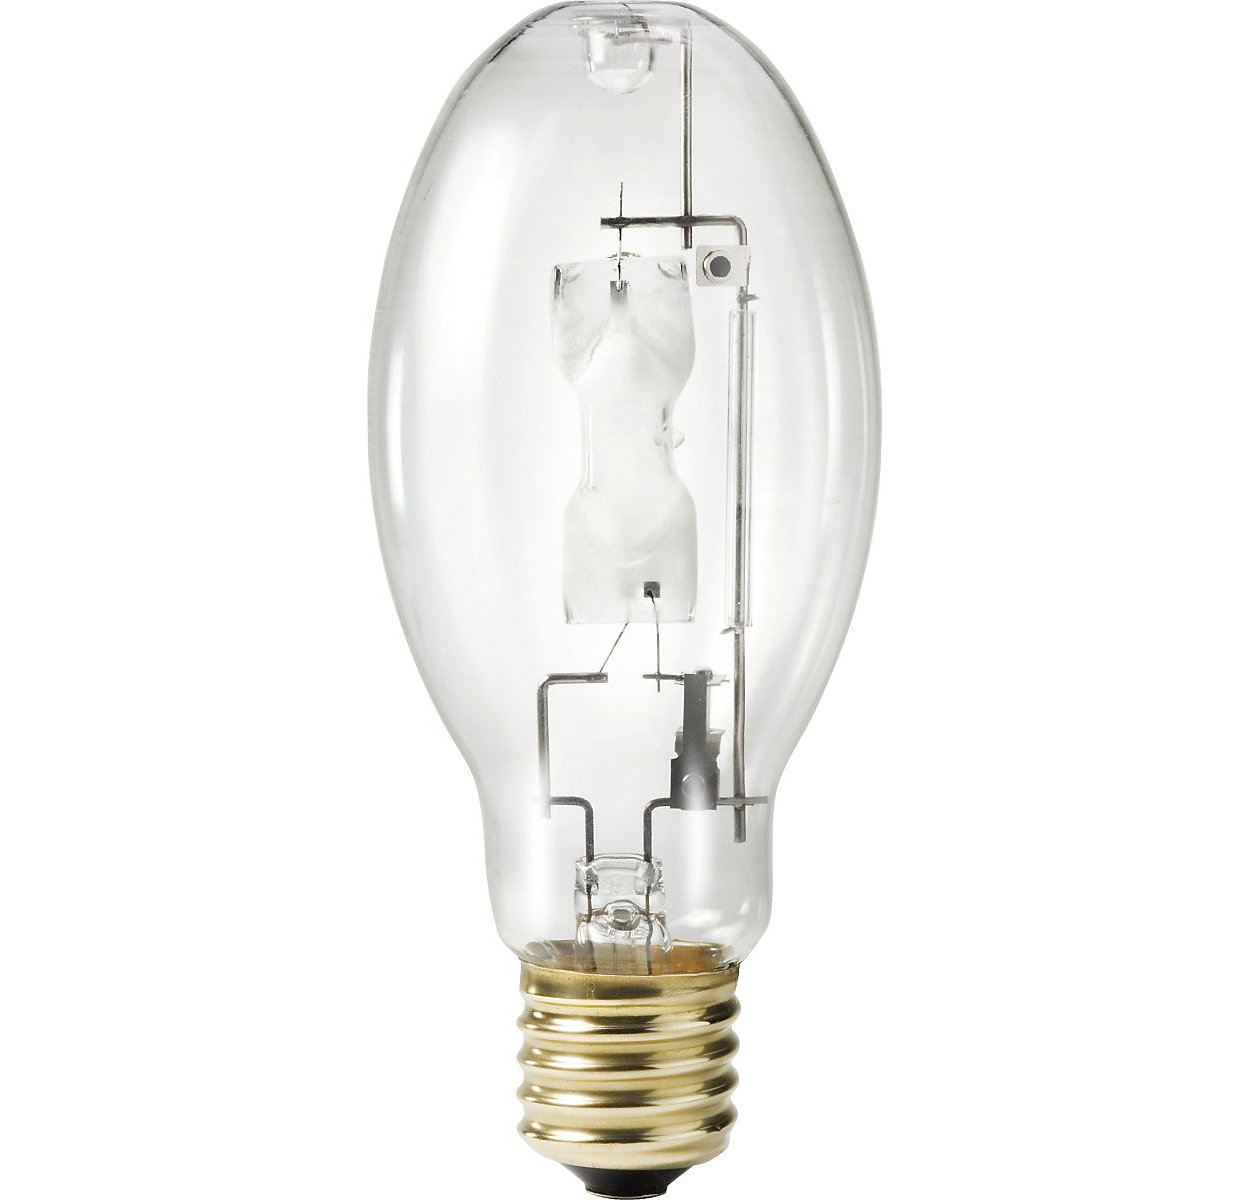 ps inflowcomponent technicalissues metal coated global u res p s lamp sylvania halide inflow bulb only content light